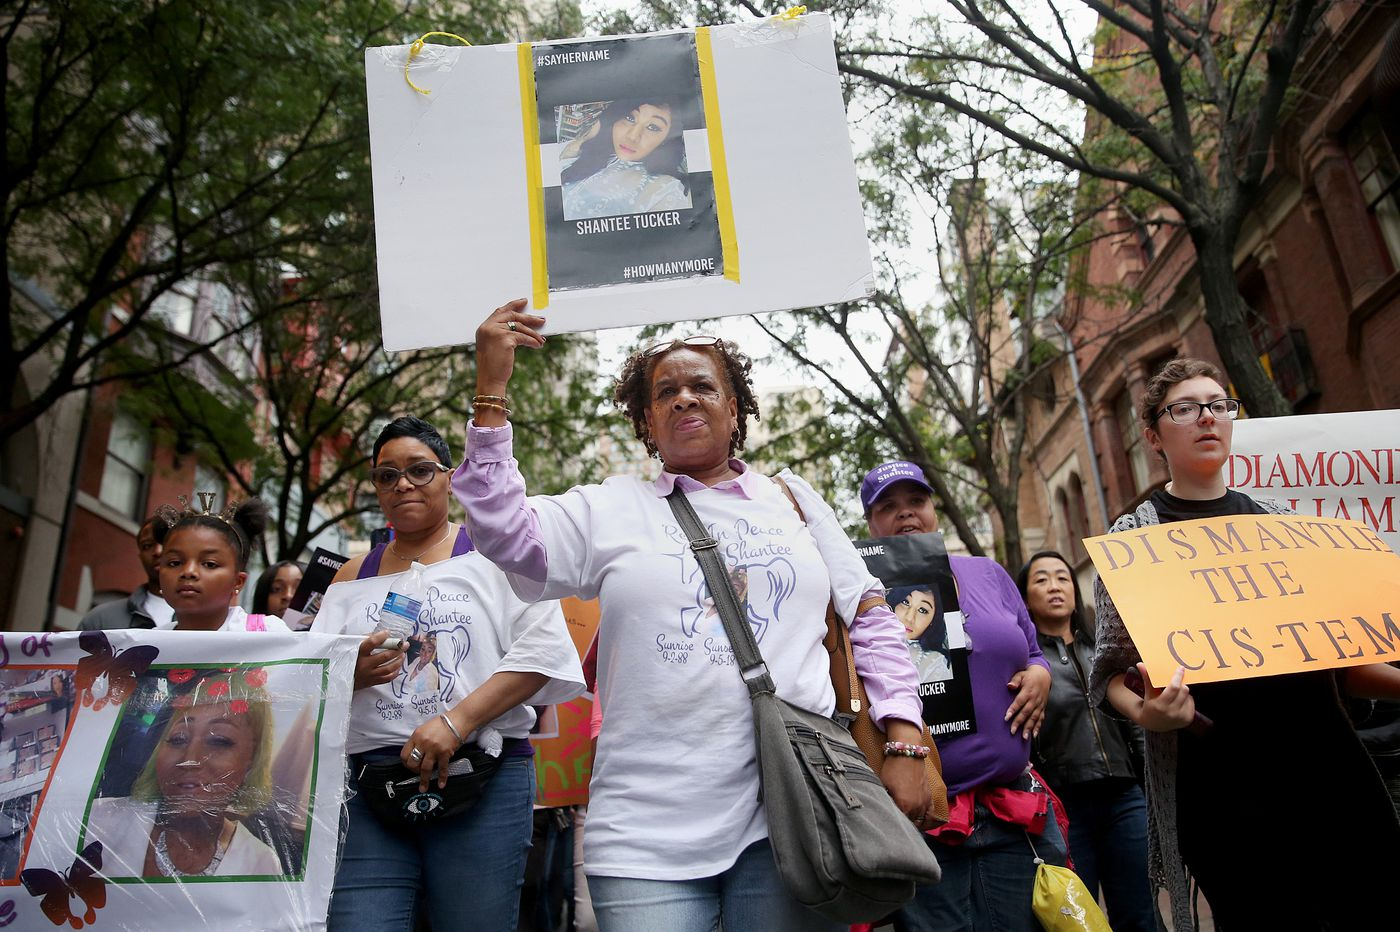 Philly trans community marches against violence